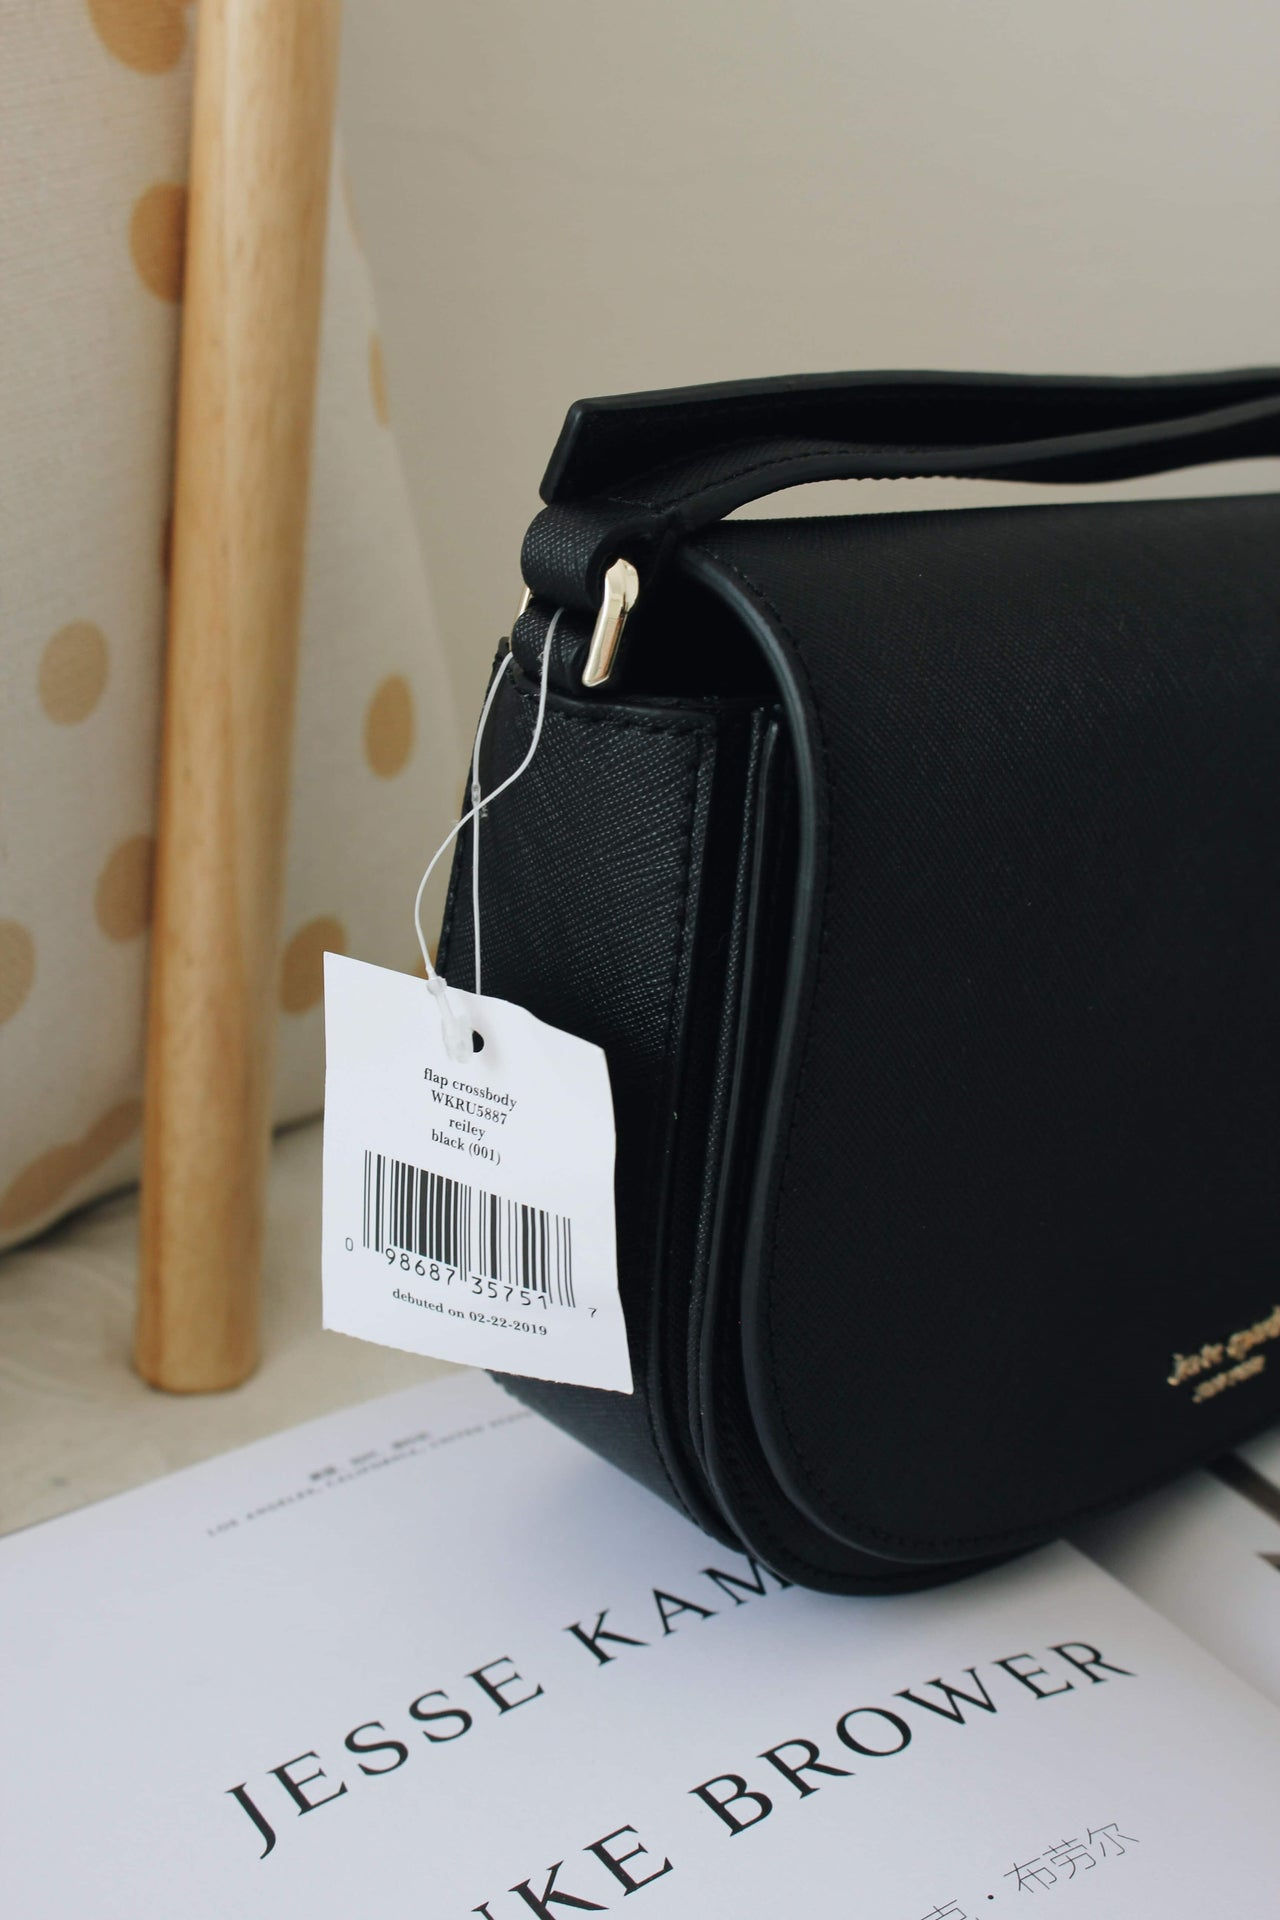 KATE SPADE NEW YORK REILEY FLAP CROSSBODY - LovelyMadness Clothing Online Fashion Malaysia